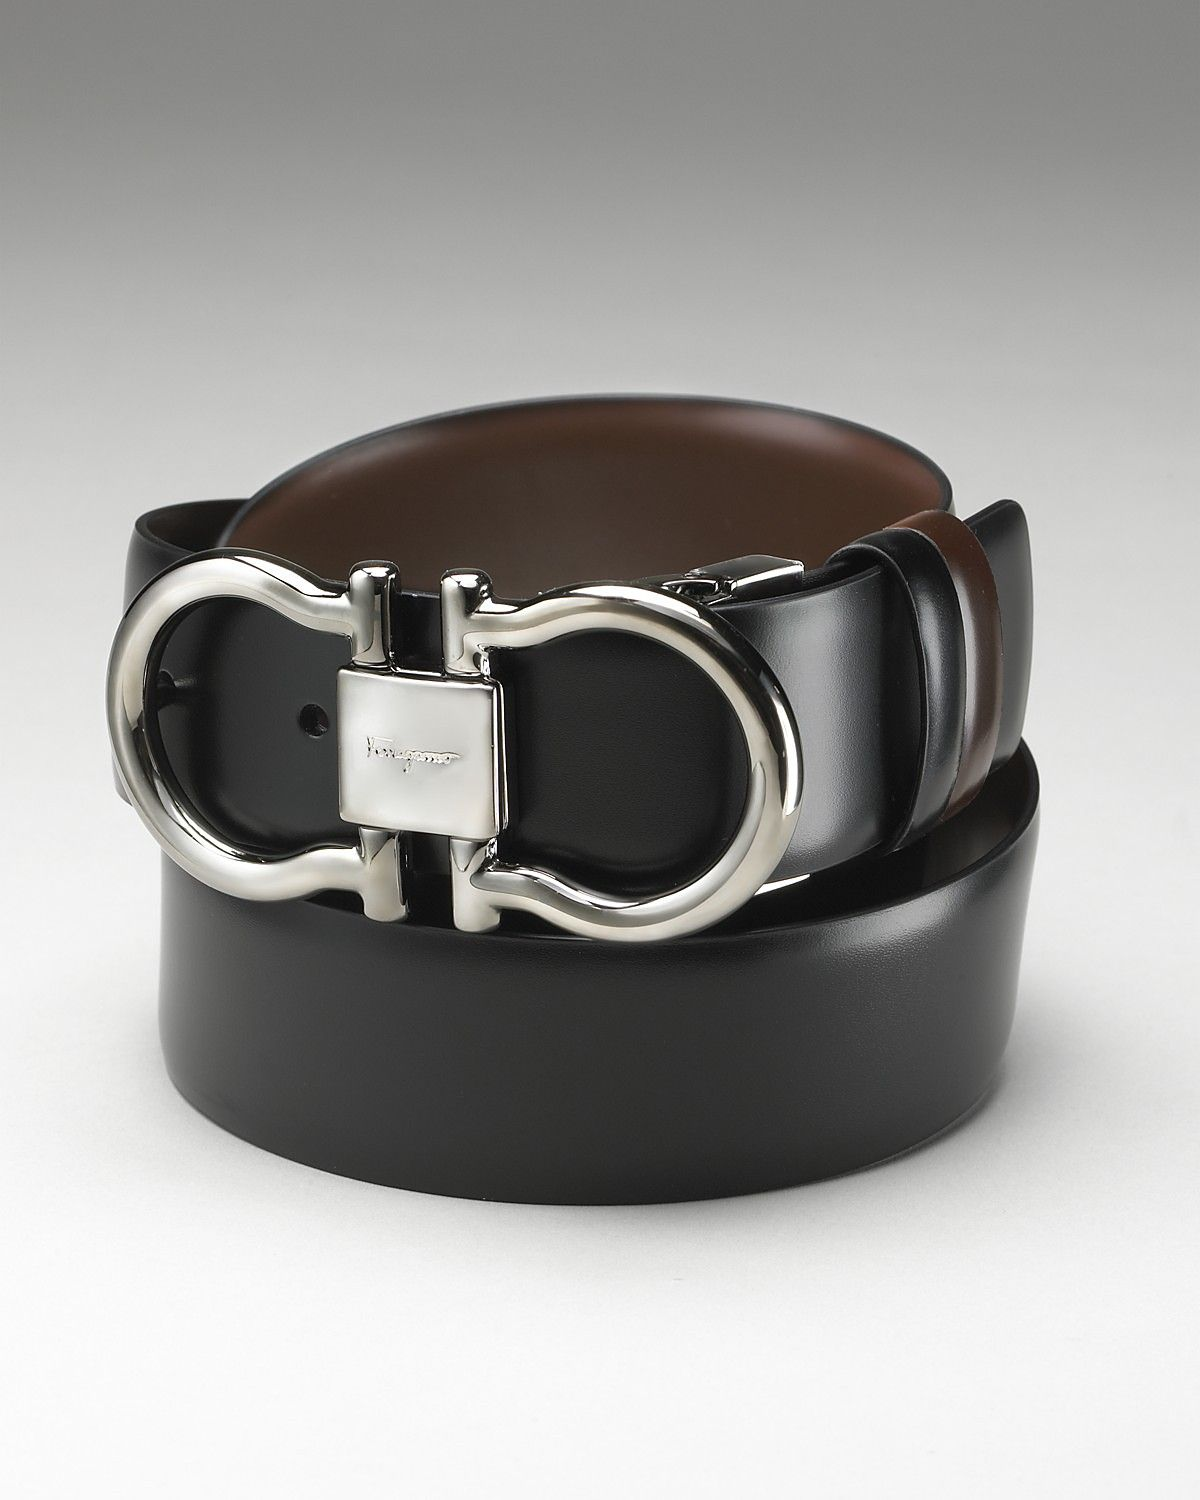 Belt with Fancy Reversible Buckle  BeltsforMen,  MenBelts,   onlineBeltsinPakistan,  OnlineBeltsShoppinginPakistan 29e7ba4f03